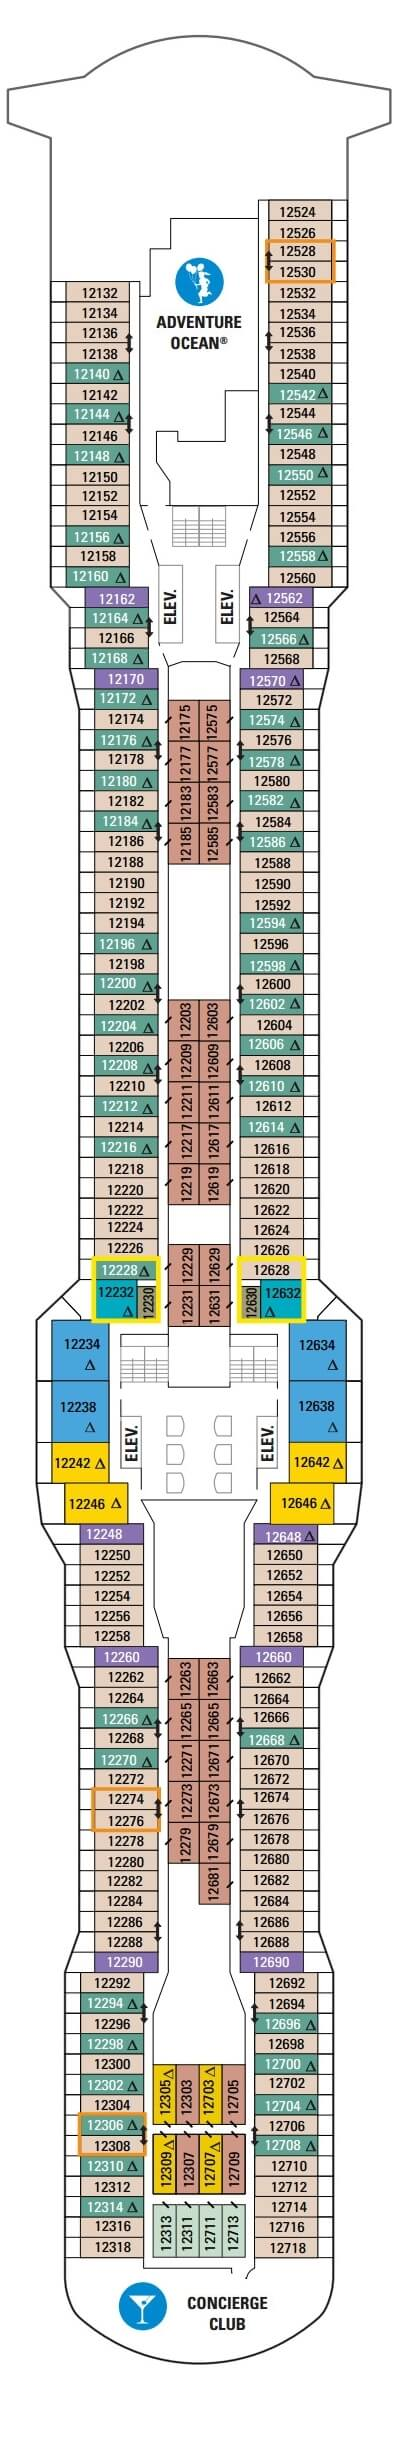 Ovation of the Seas Deck 12 layout